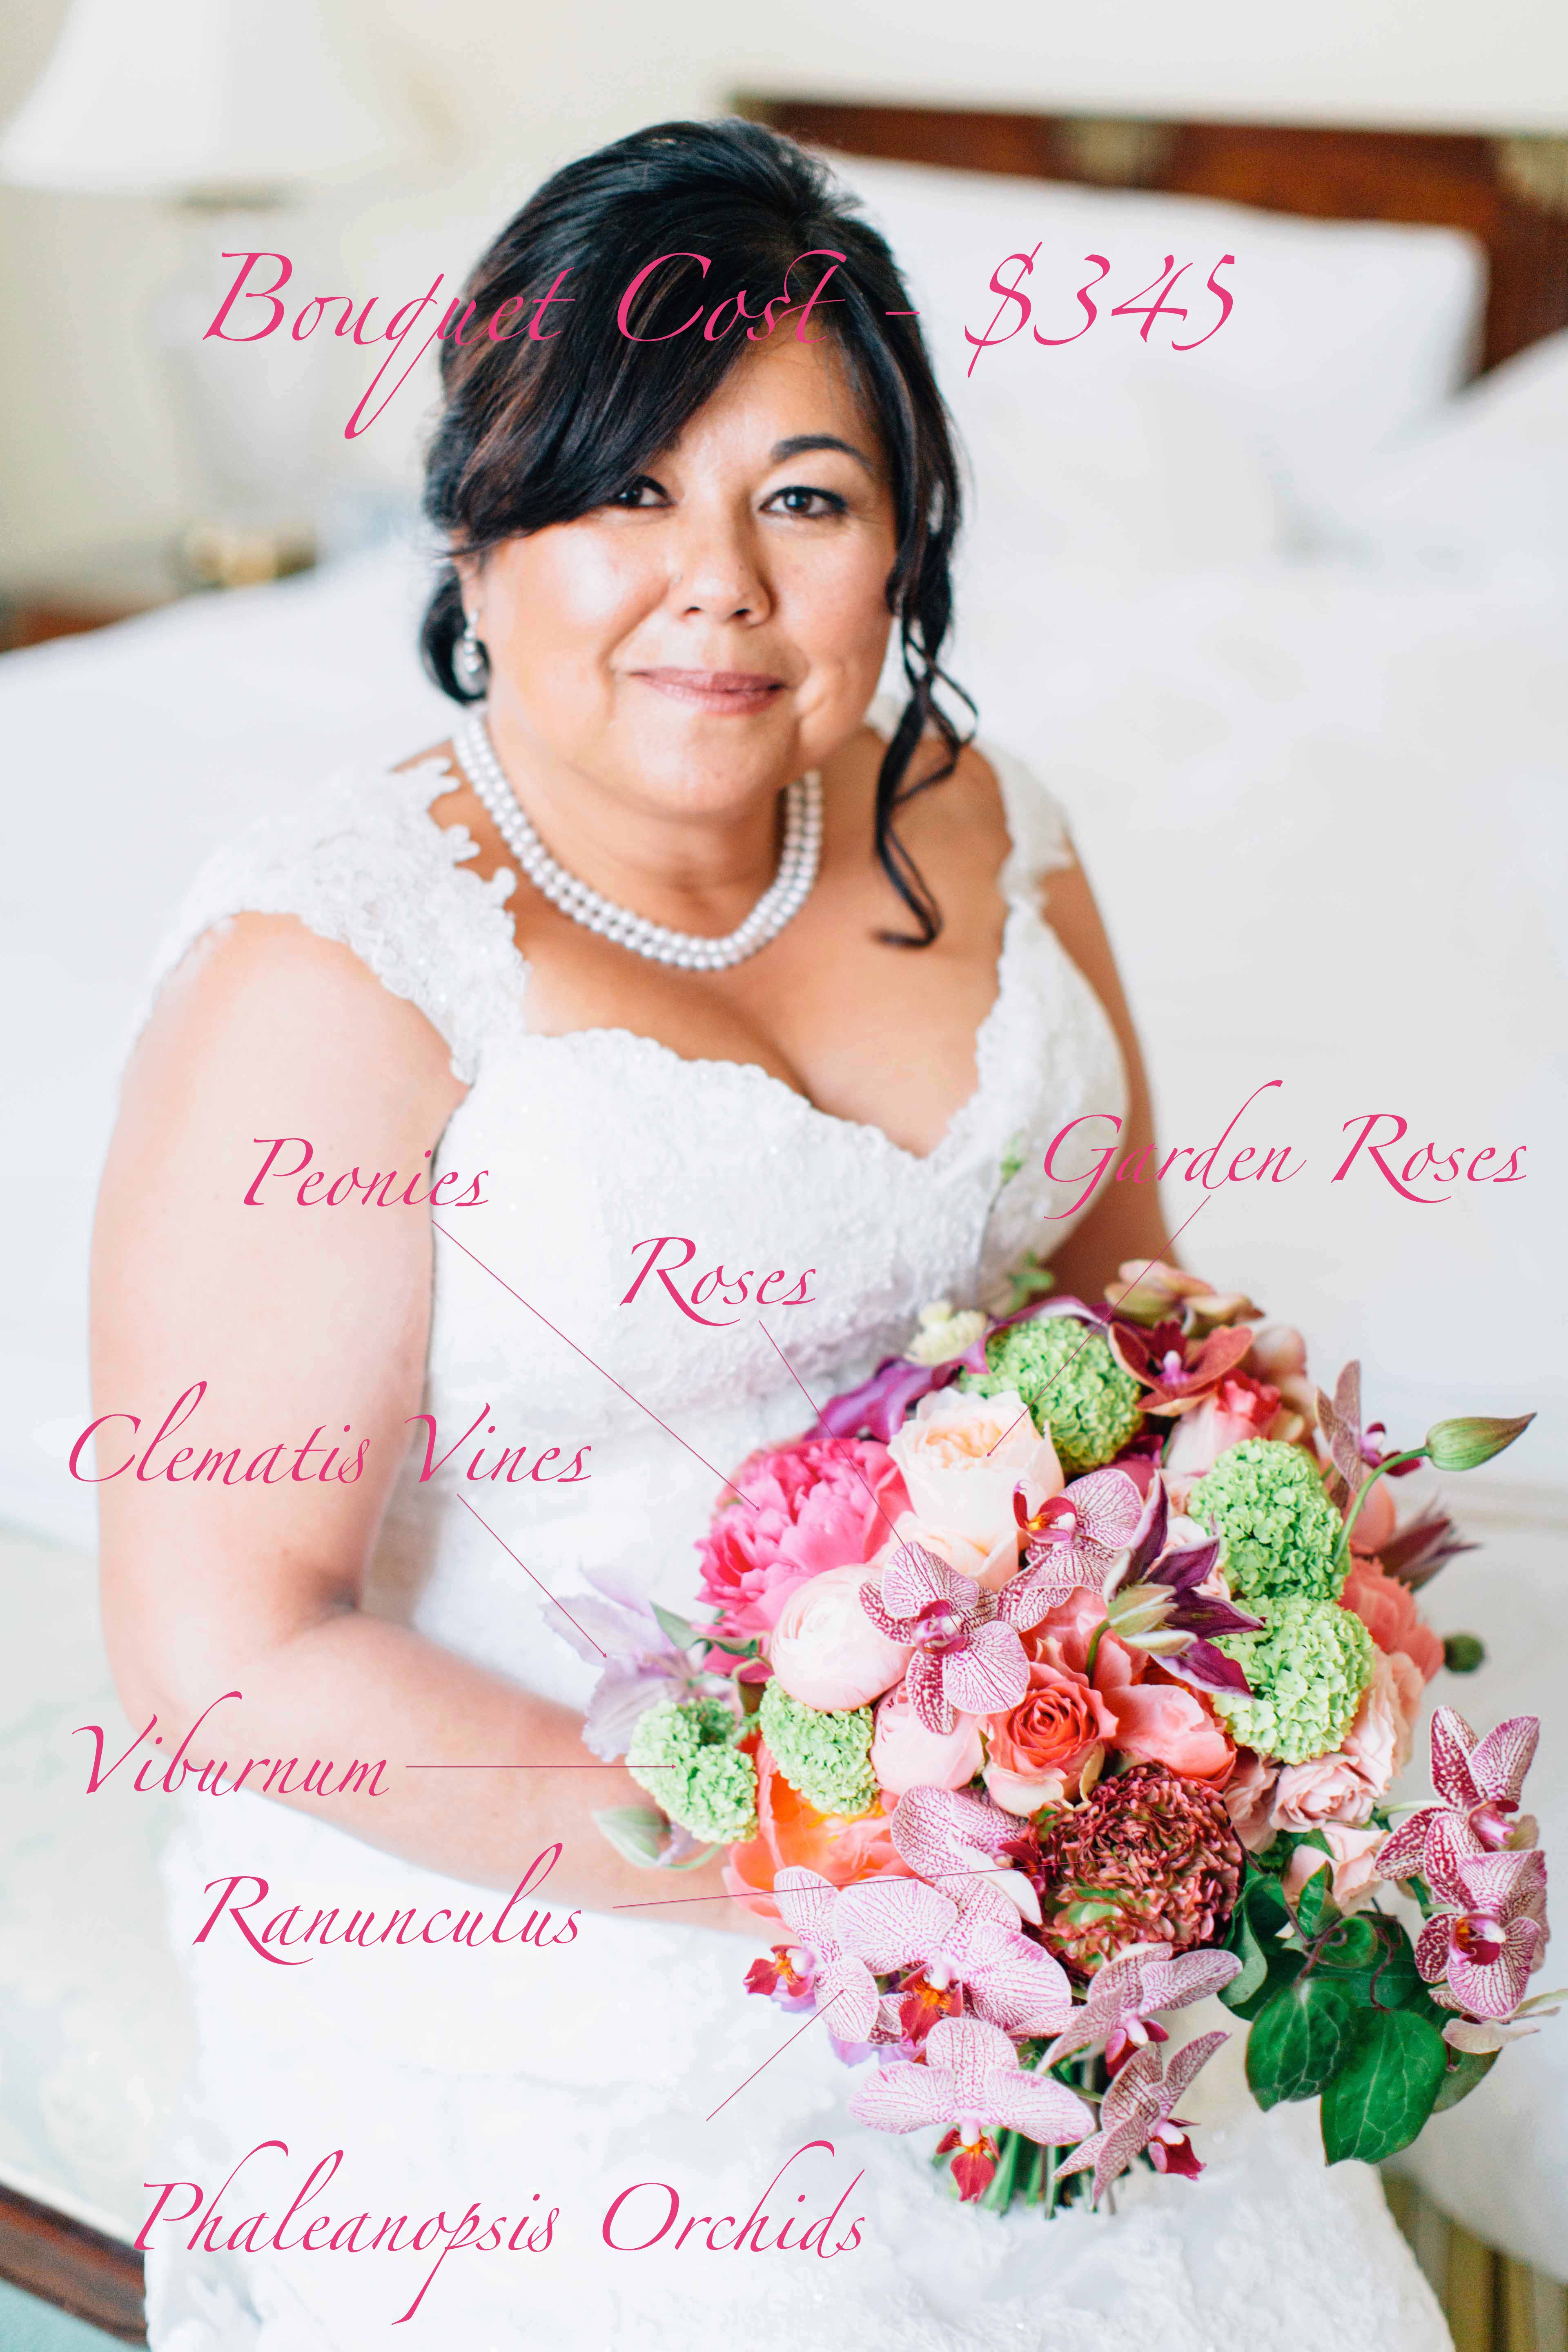 Bridal bouquet pricing and recipe of elegant red and pink bouquet with roses, peonies, viburnum, orchids, ranunculus - by Flora Nova Design Seattle